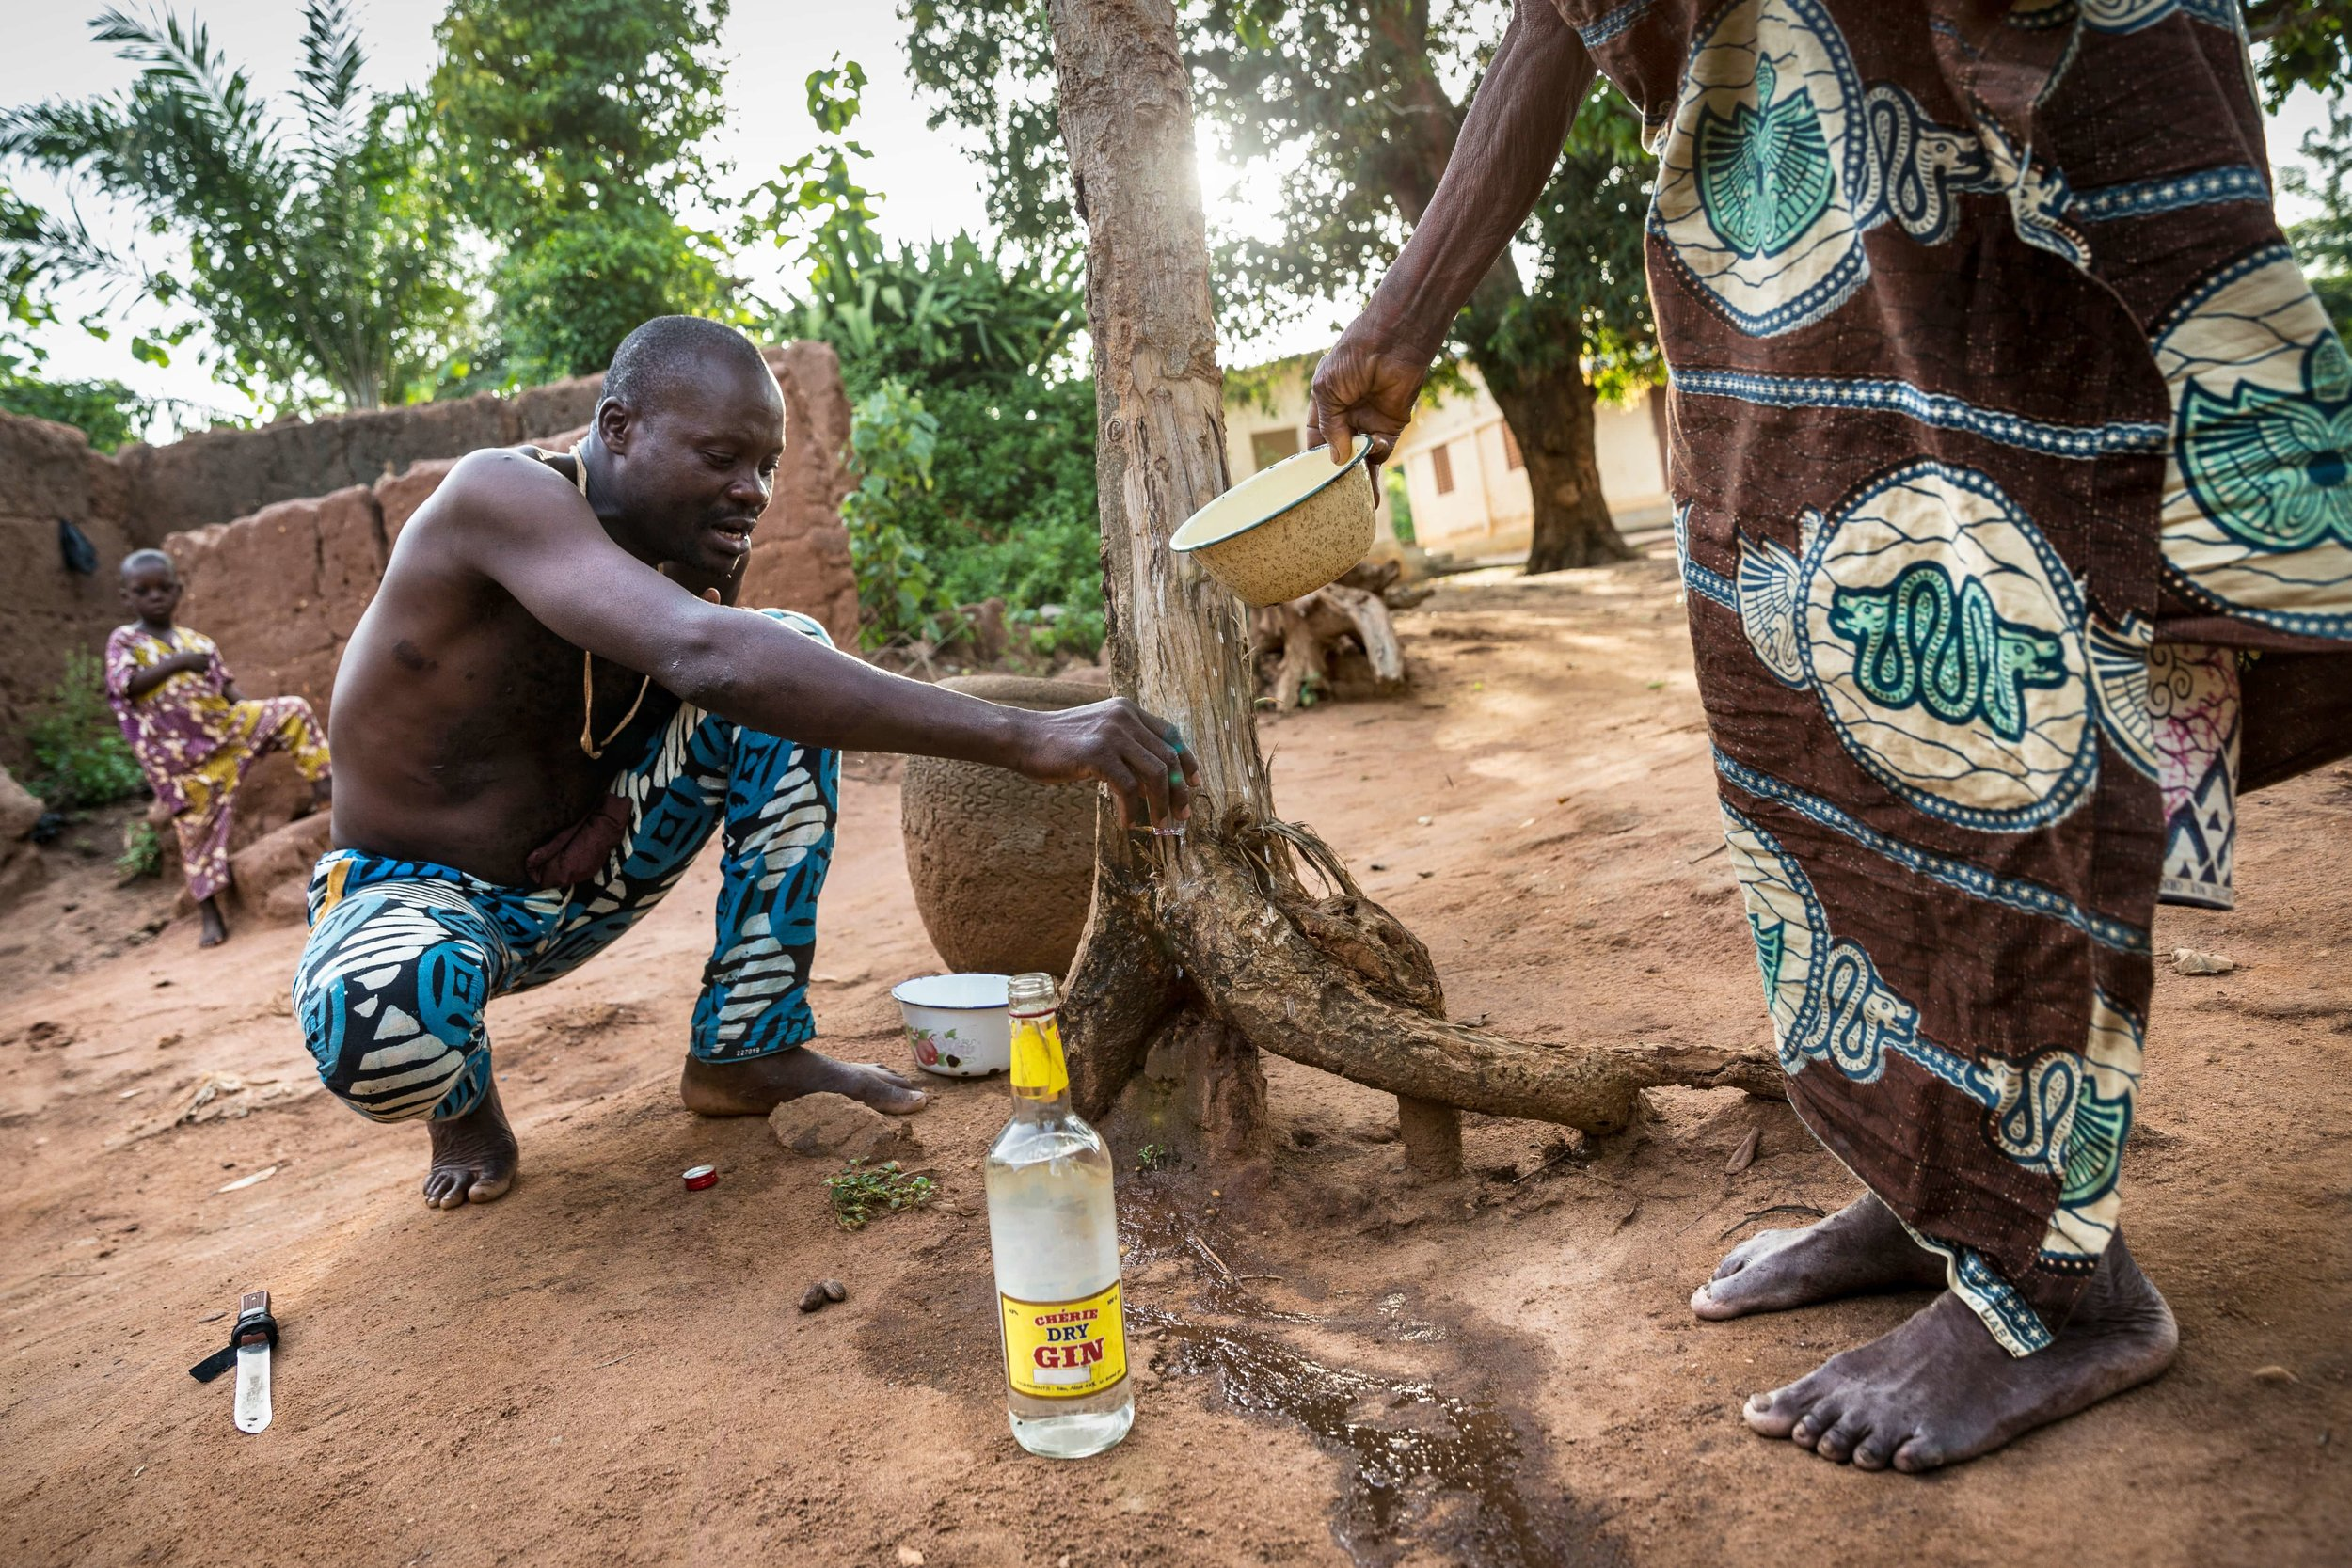 The chef-du-village opening the Revenant Voodoo celebration pouring gin and making offers at the tree of the ancestors.